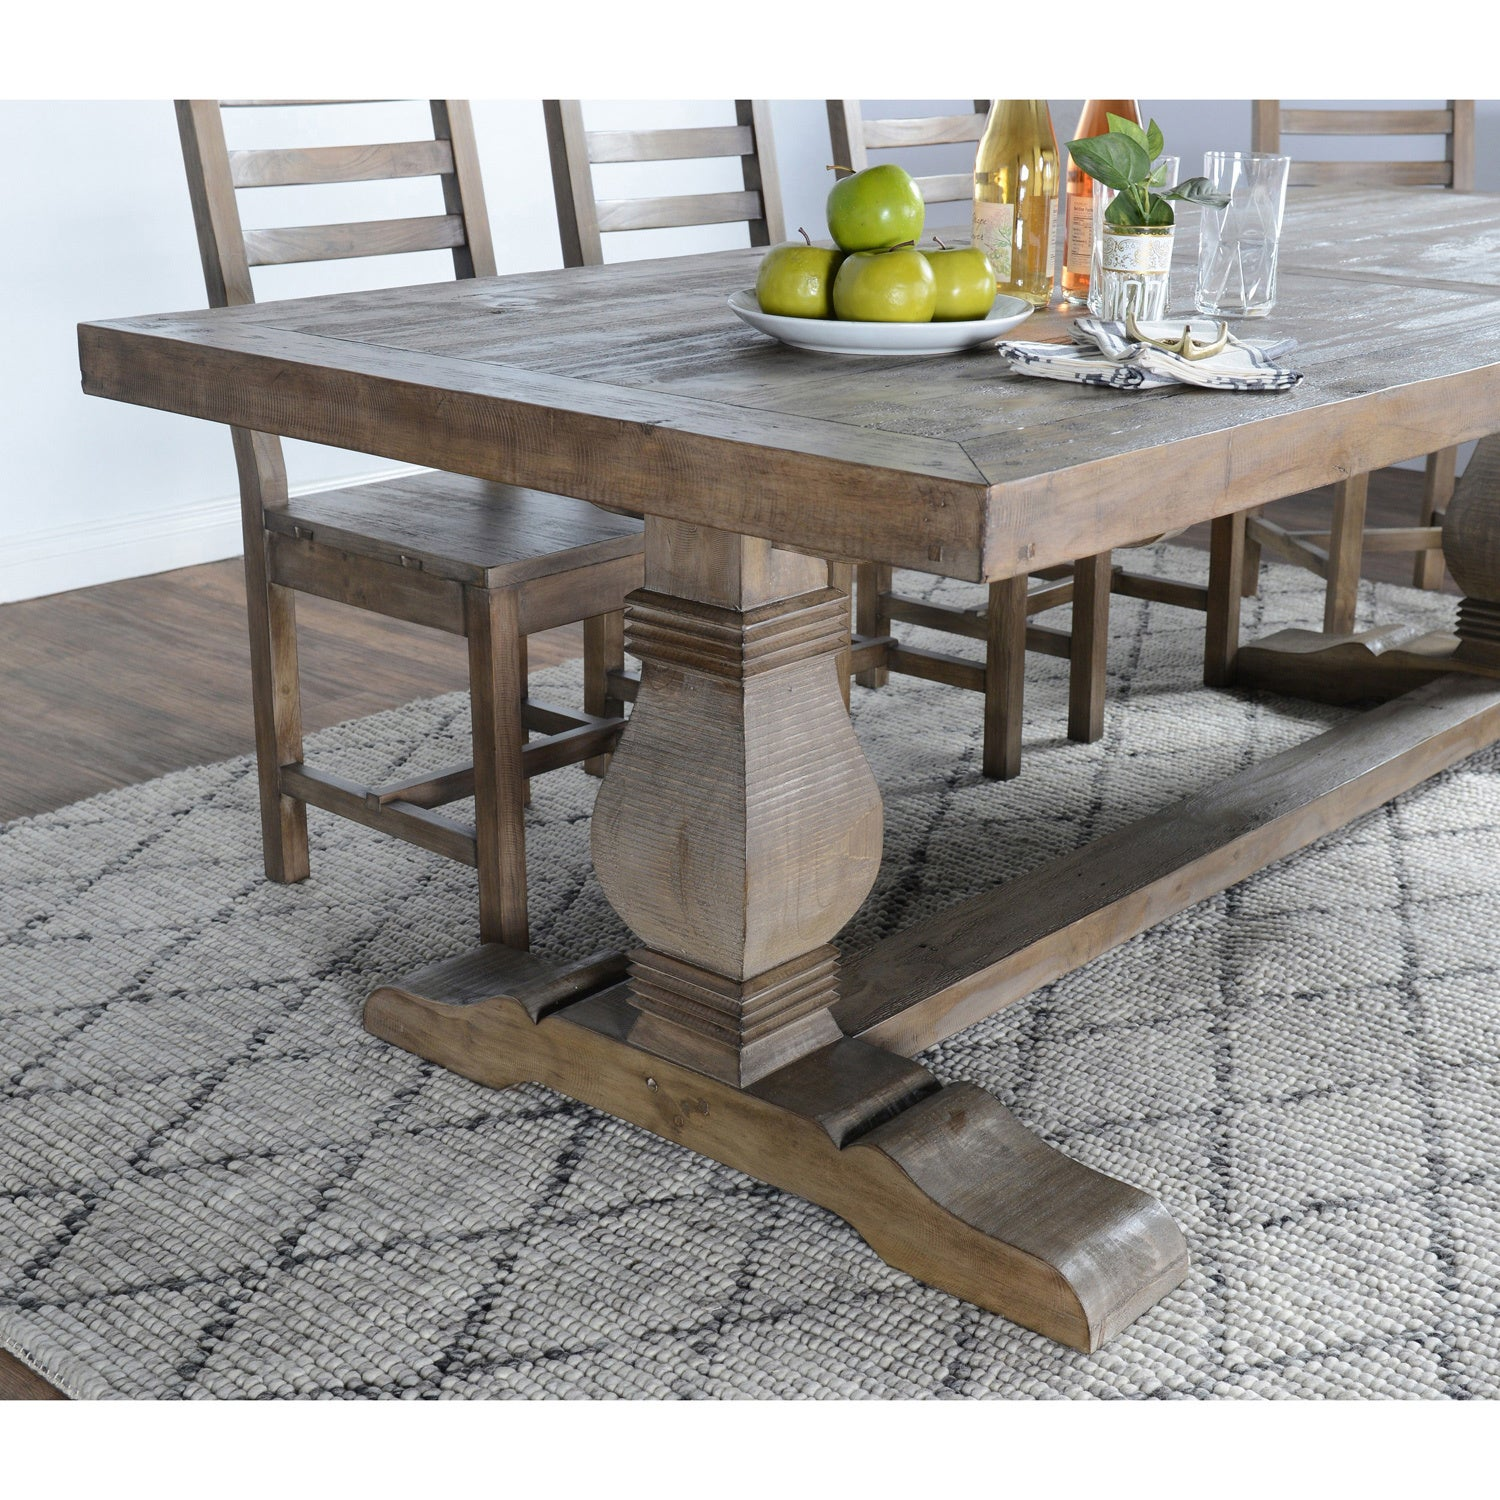 Shop Kasey Reclaimed Wood 94 Inch Dining Table By Kosas Home   Desert Grey    30.7hx94.5wx39.4d   Free Shipping Today   Overstock.com   11342892